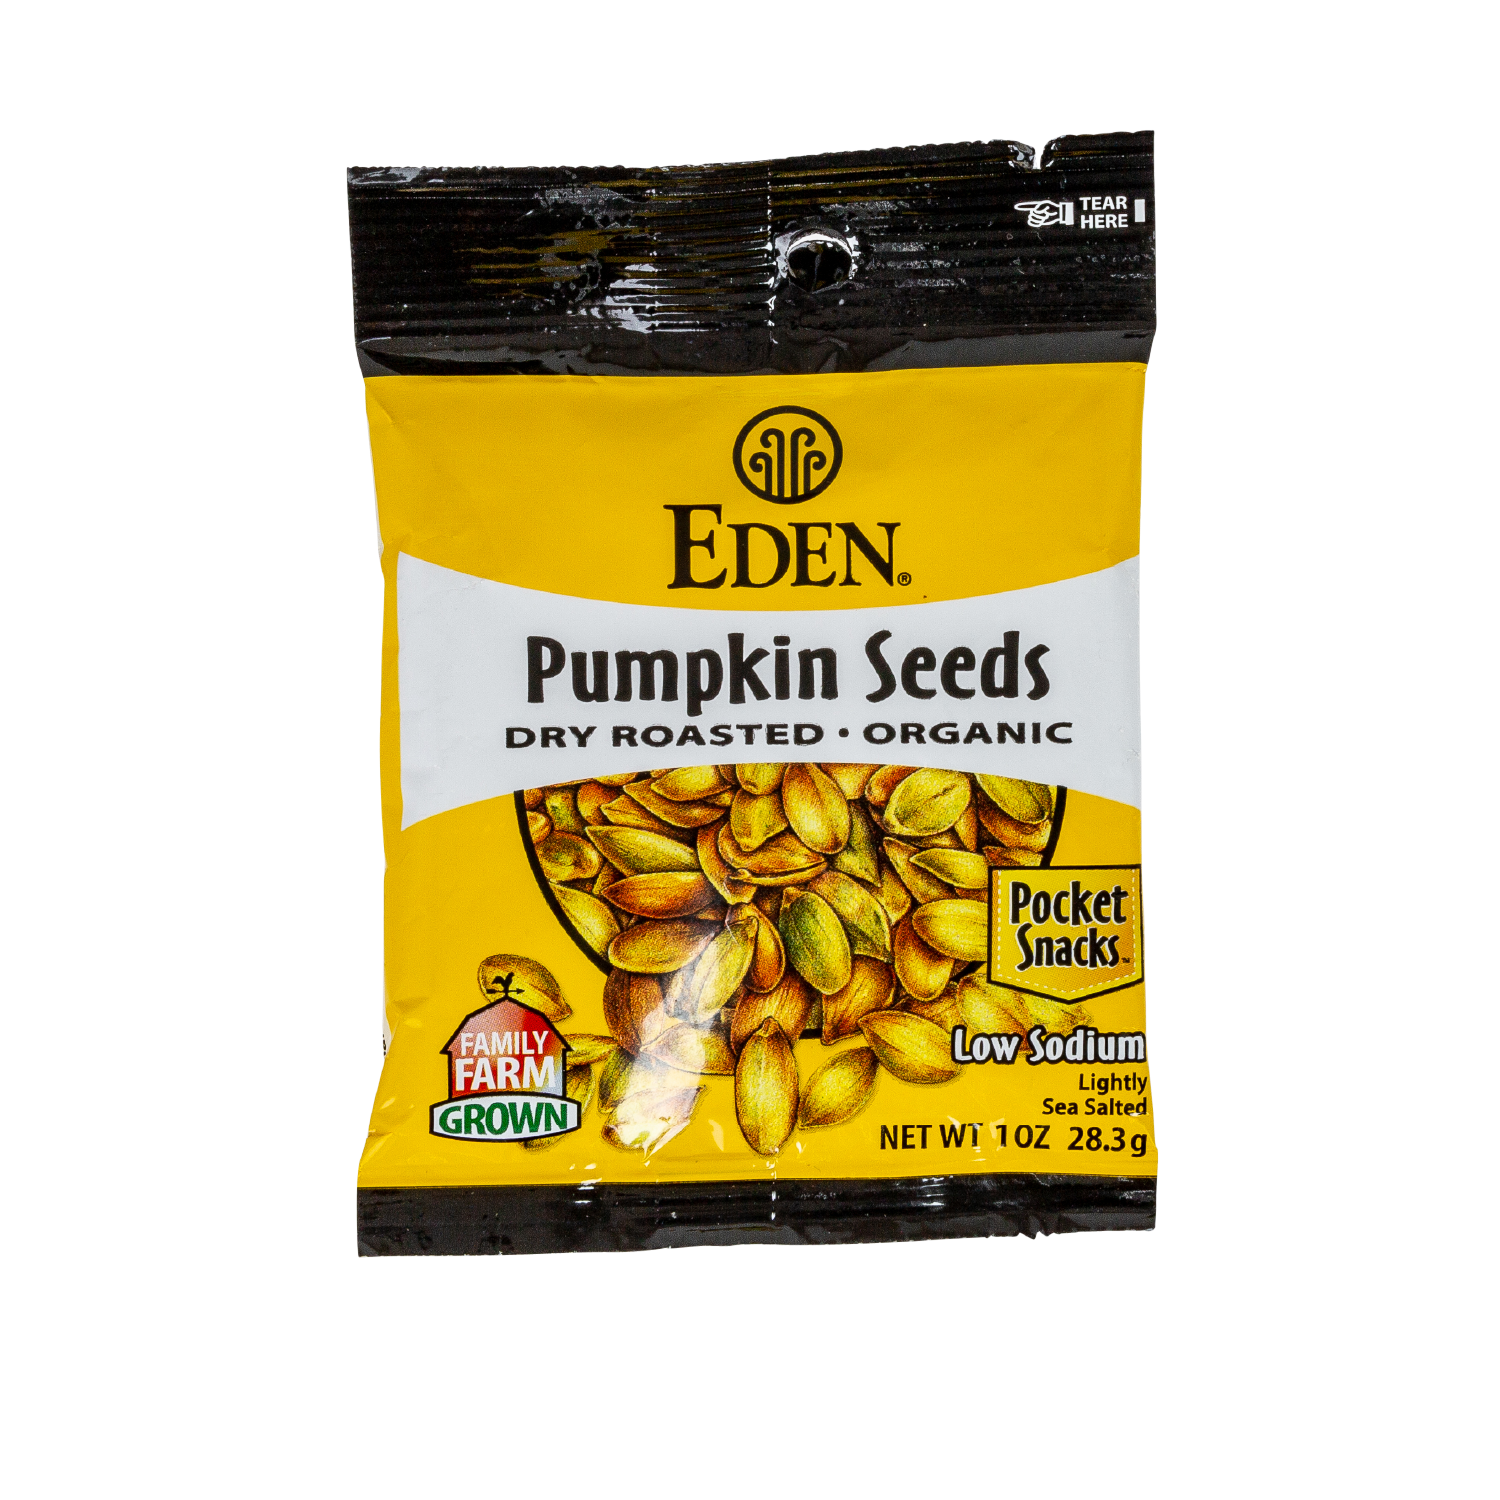 Eden Pumpkin Seeds